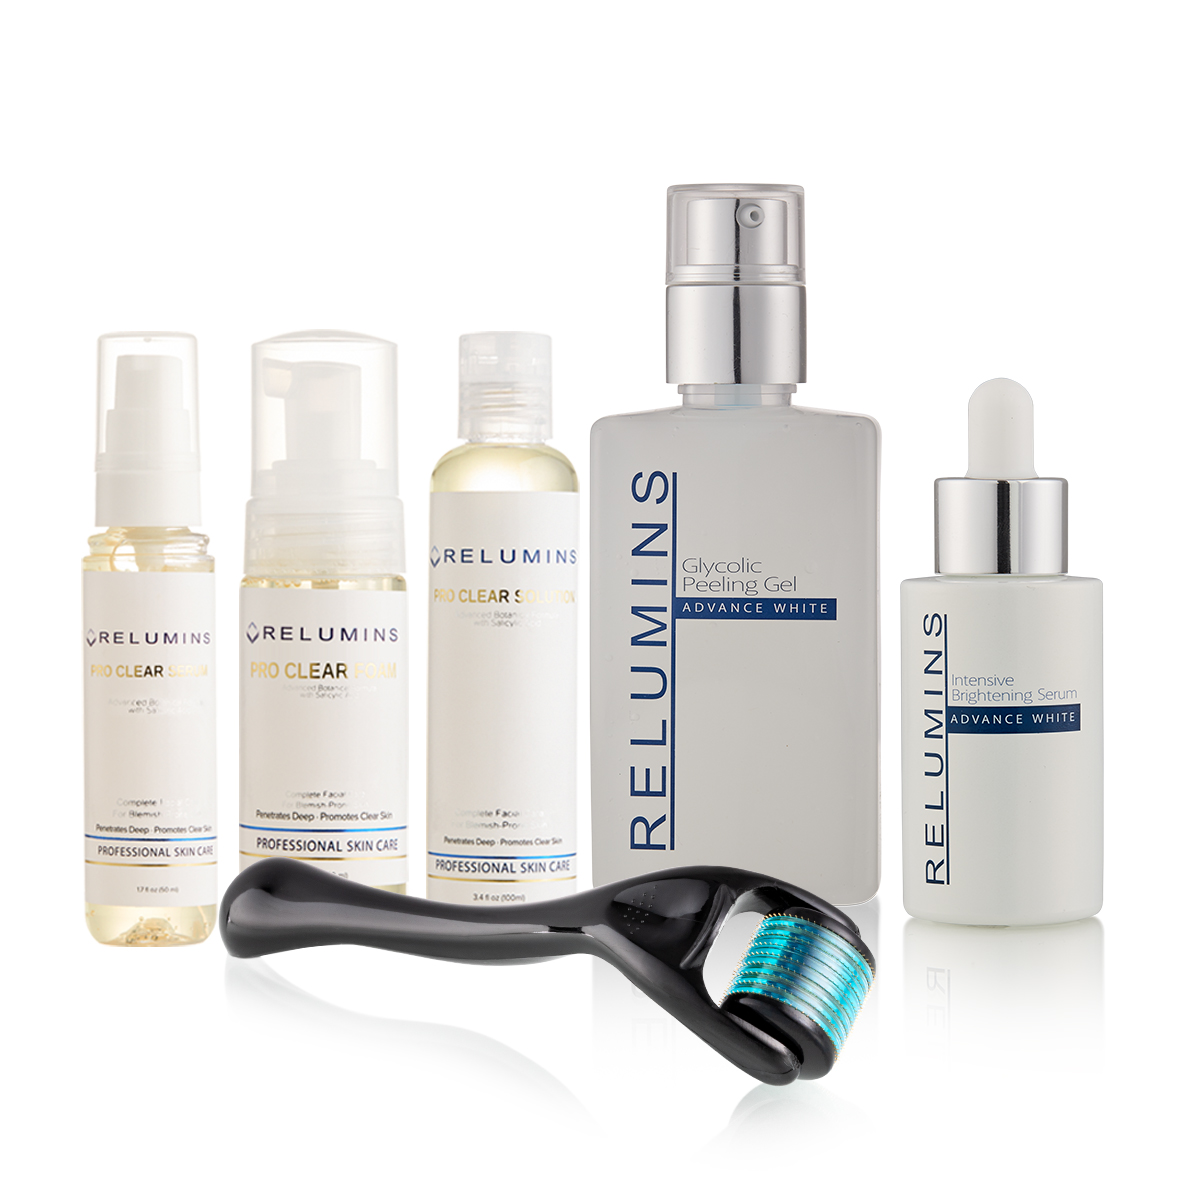 Authentic Relumins Professional Total Acne& Scar Appearance Reducing Set For Hard to Whiten, Sun Damaged Skin & Indented Scars